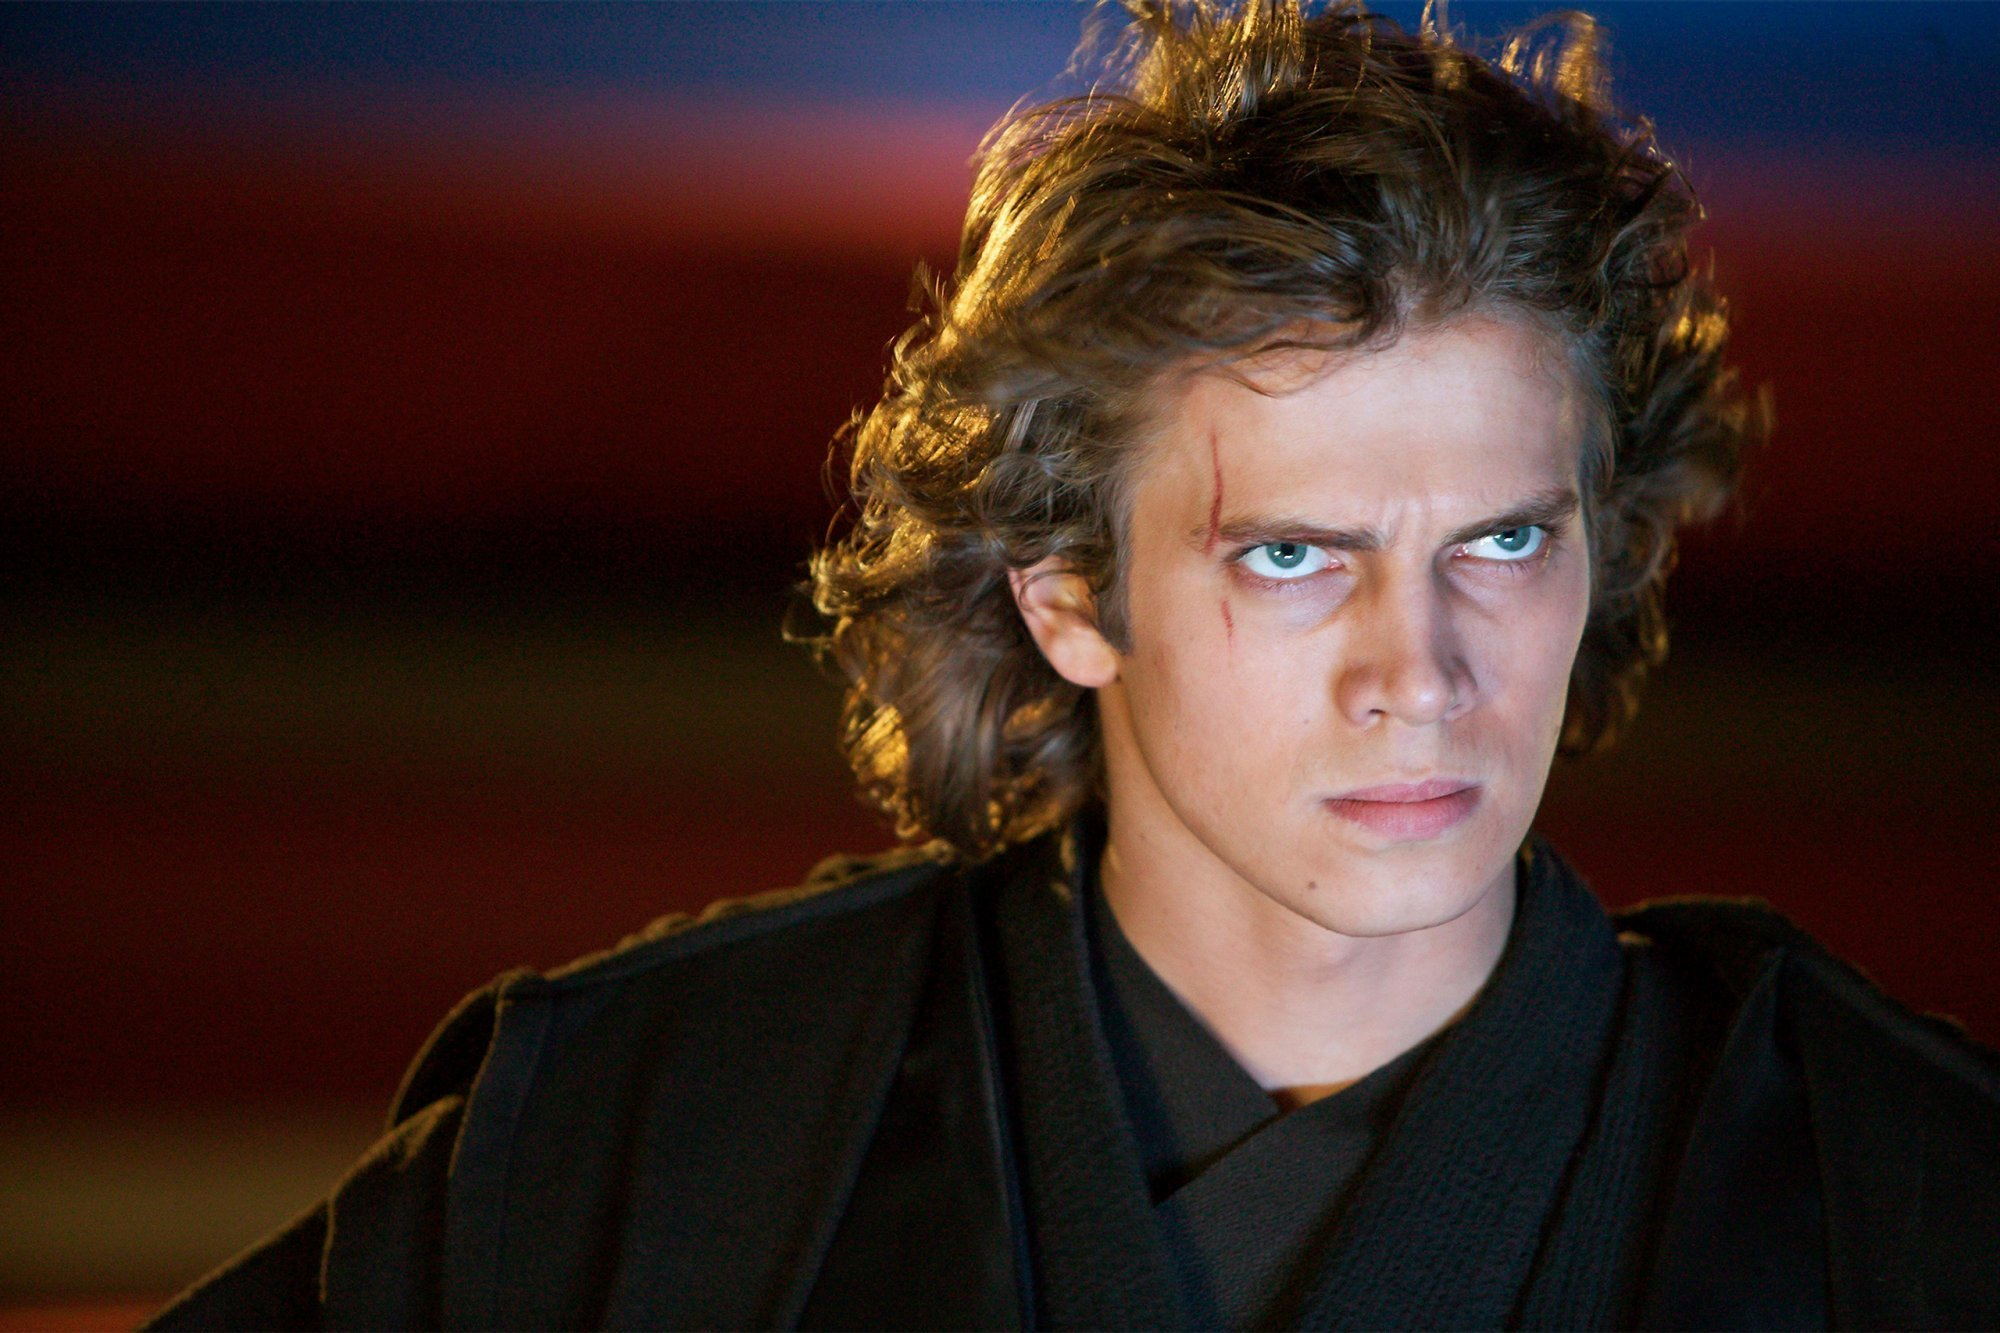 Anakin Skywalker, Kylo Ren's grandfather and Dark side role model, also had a defining scar on his face.